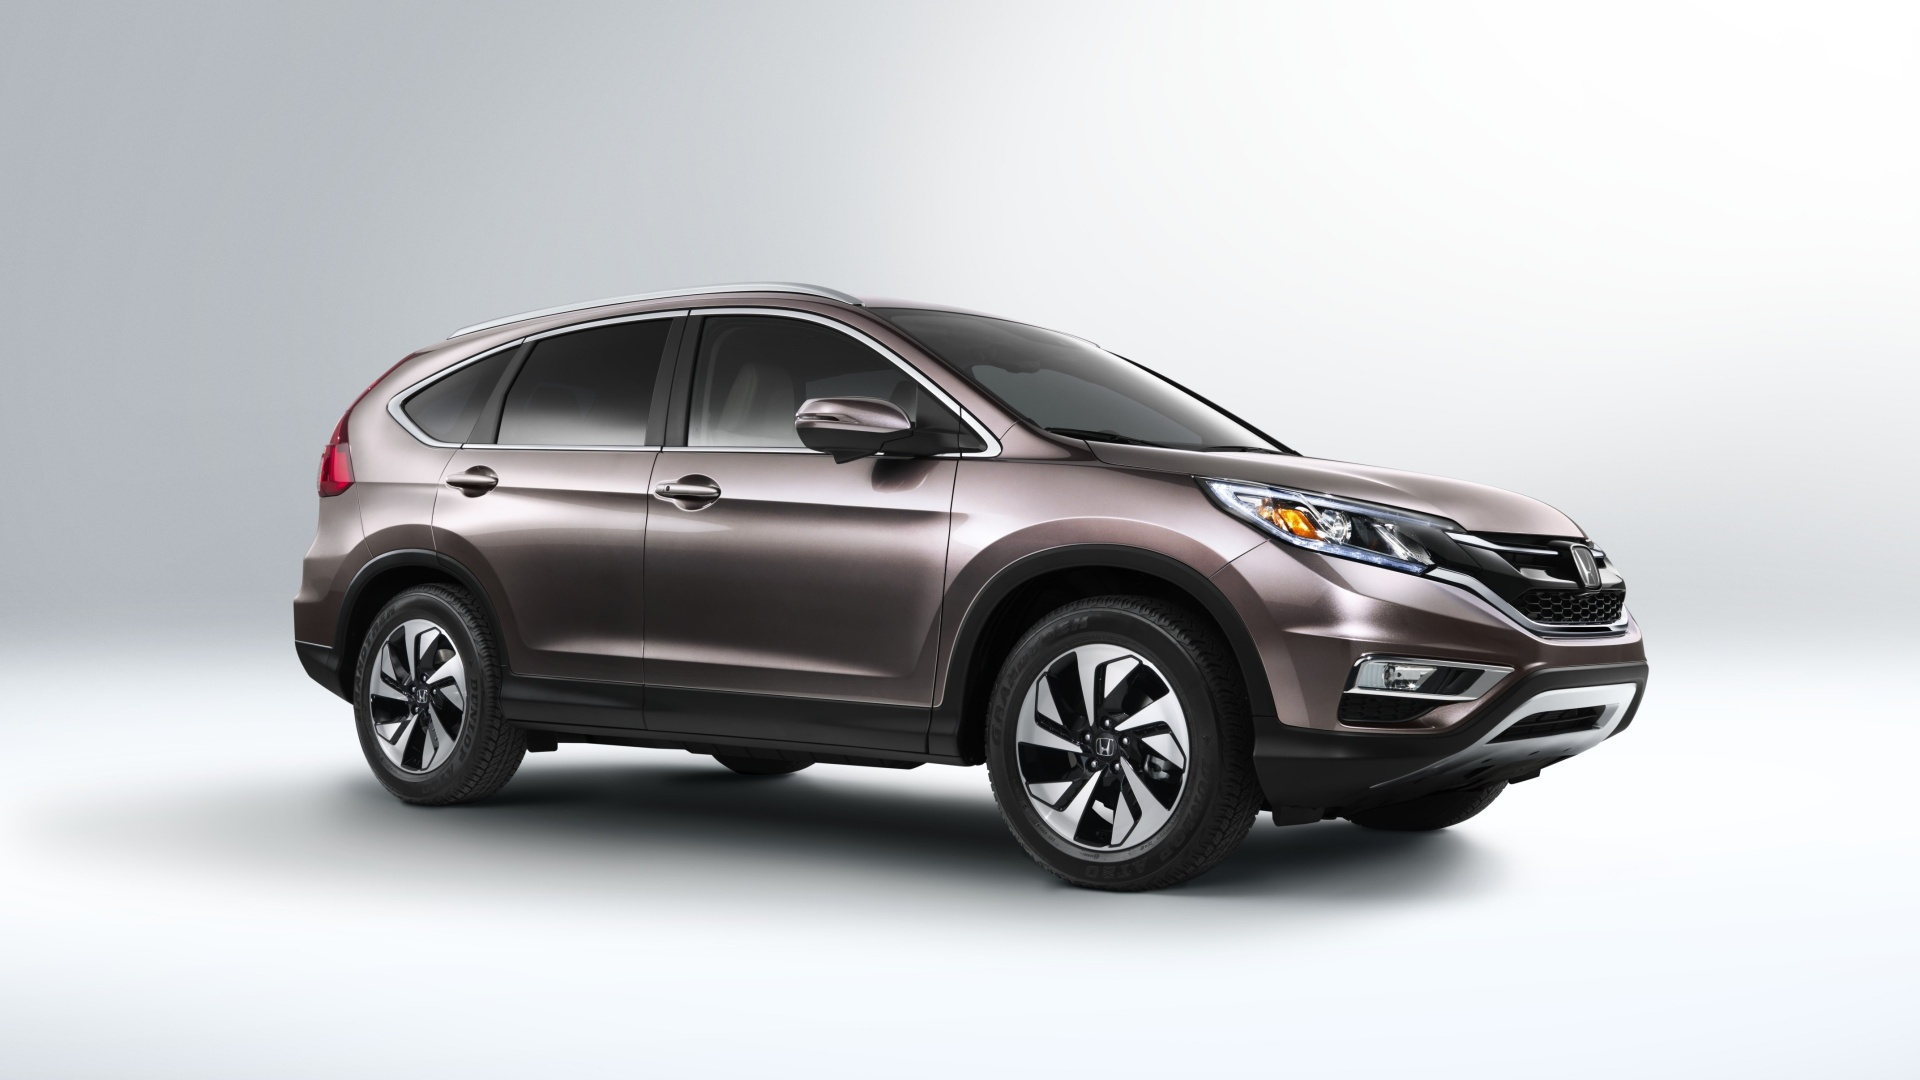 Honda cr v usa version 2016 wallpapers 1920x1080 291683 for Honda crv usa